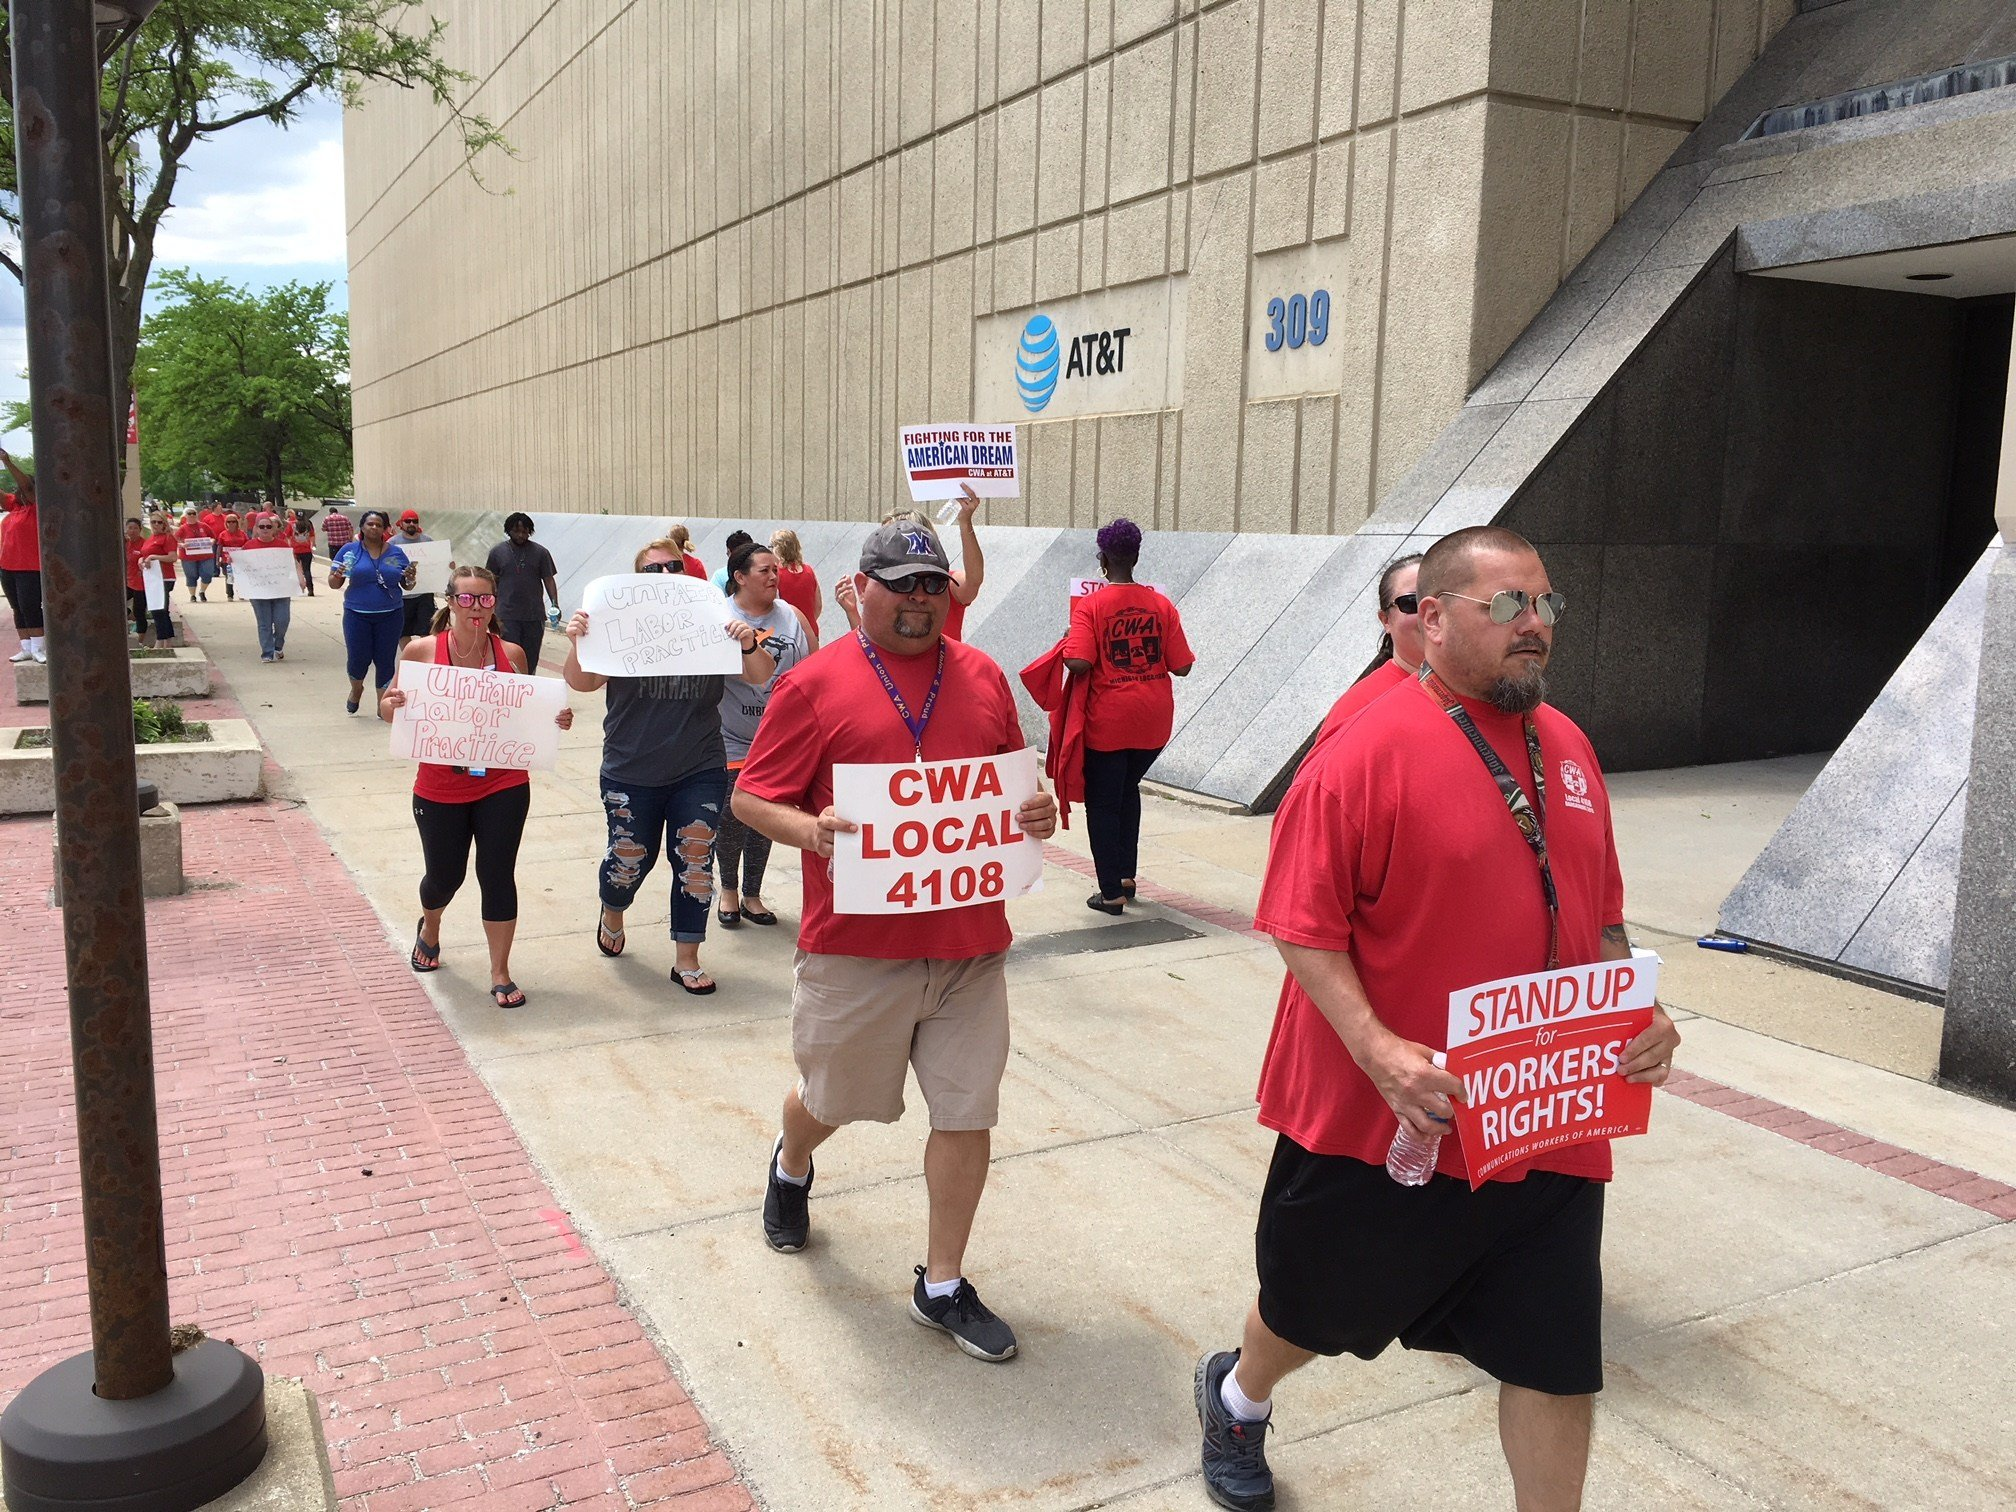 More than 300 AT&T workers in Dayton go on strike